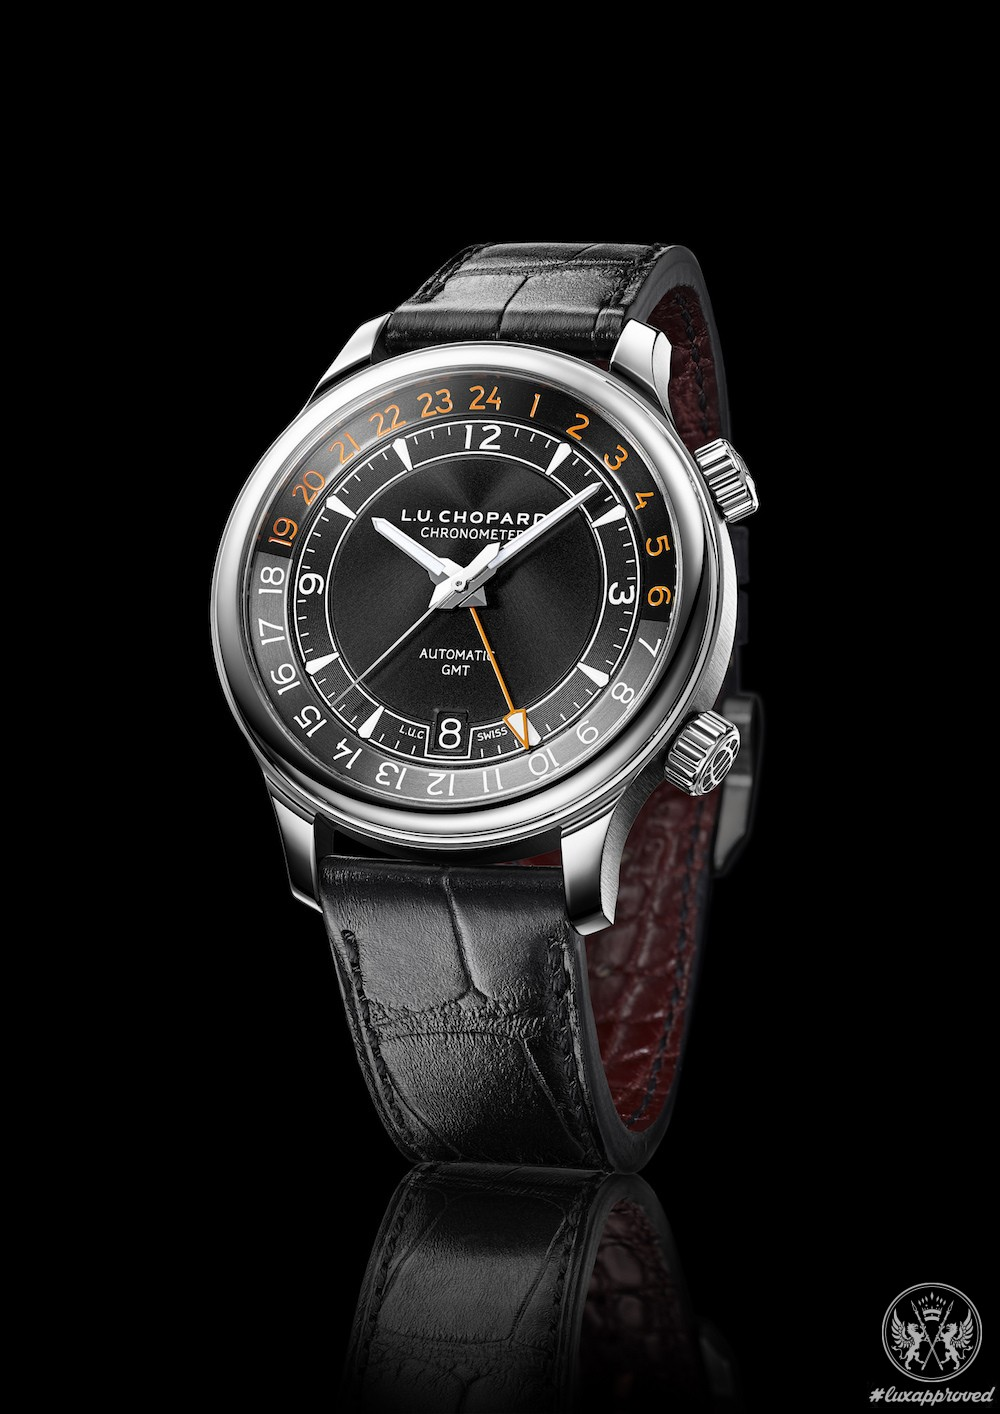 Chopard Releases New Watches, L.U.C Time Traveler One & GMT One